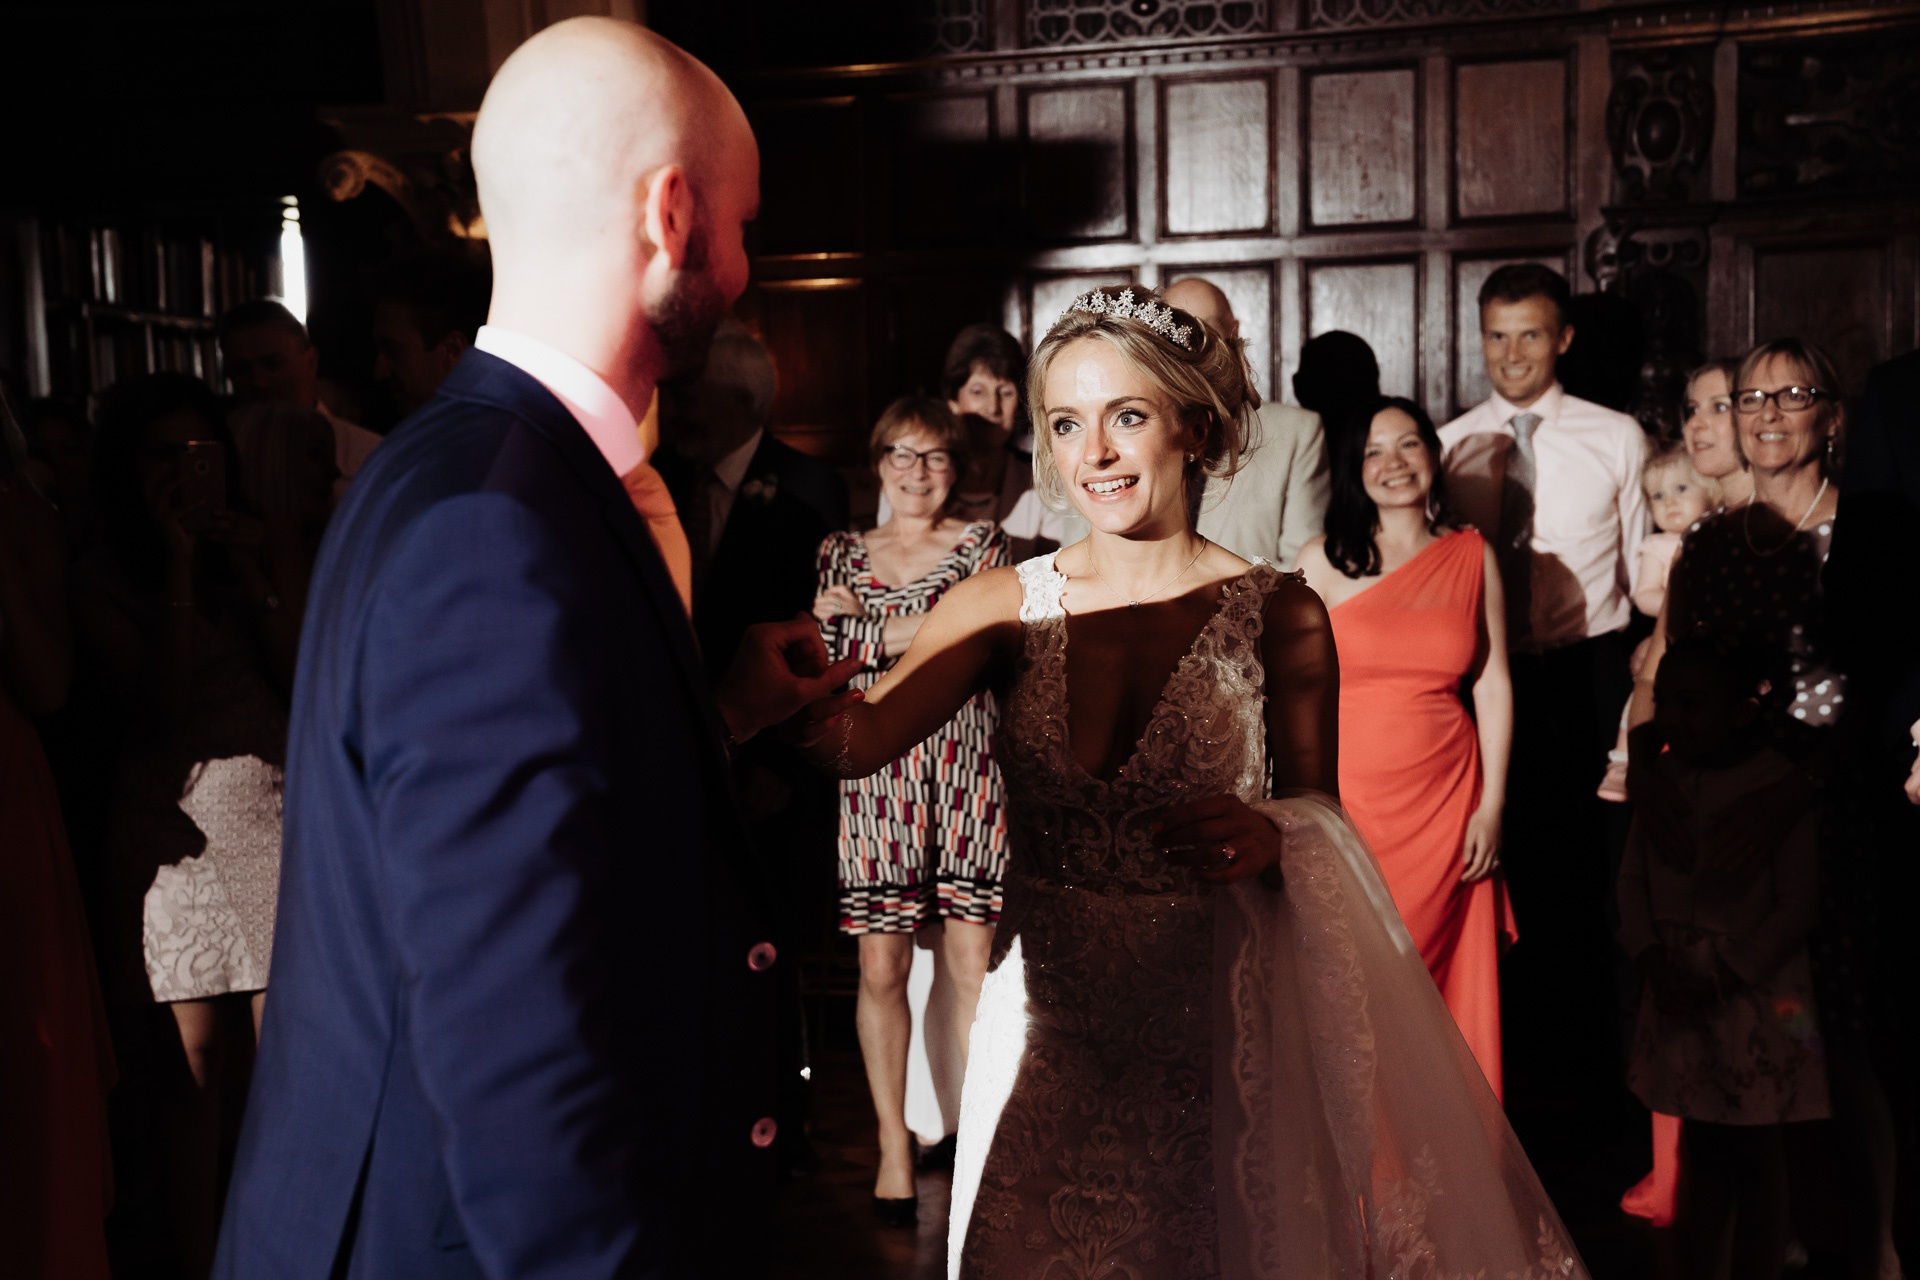 huntsham-court-wedding-photographer-062